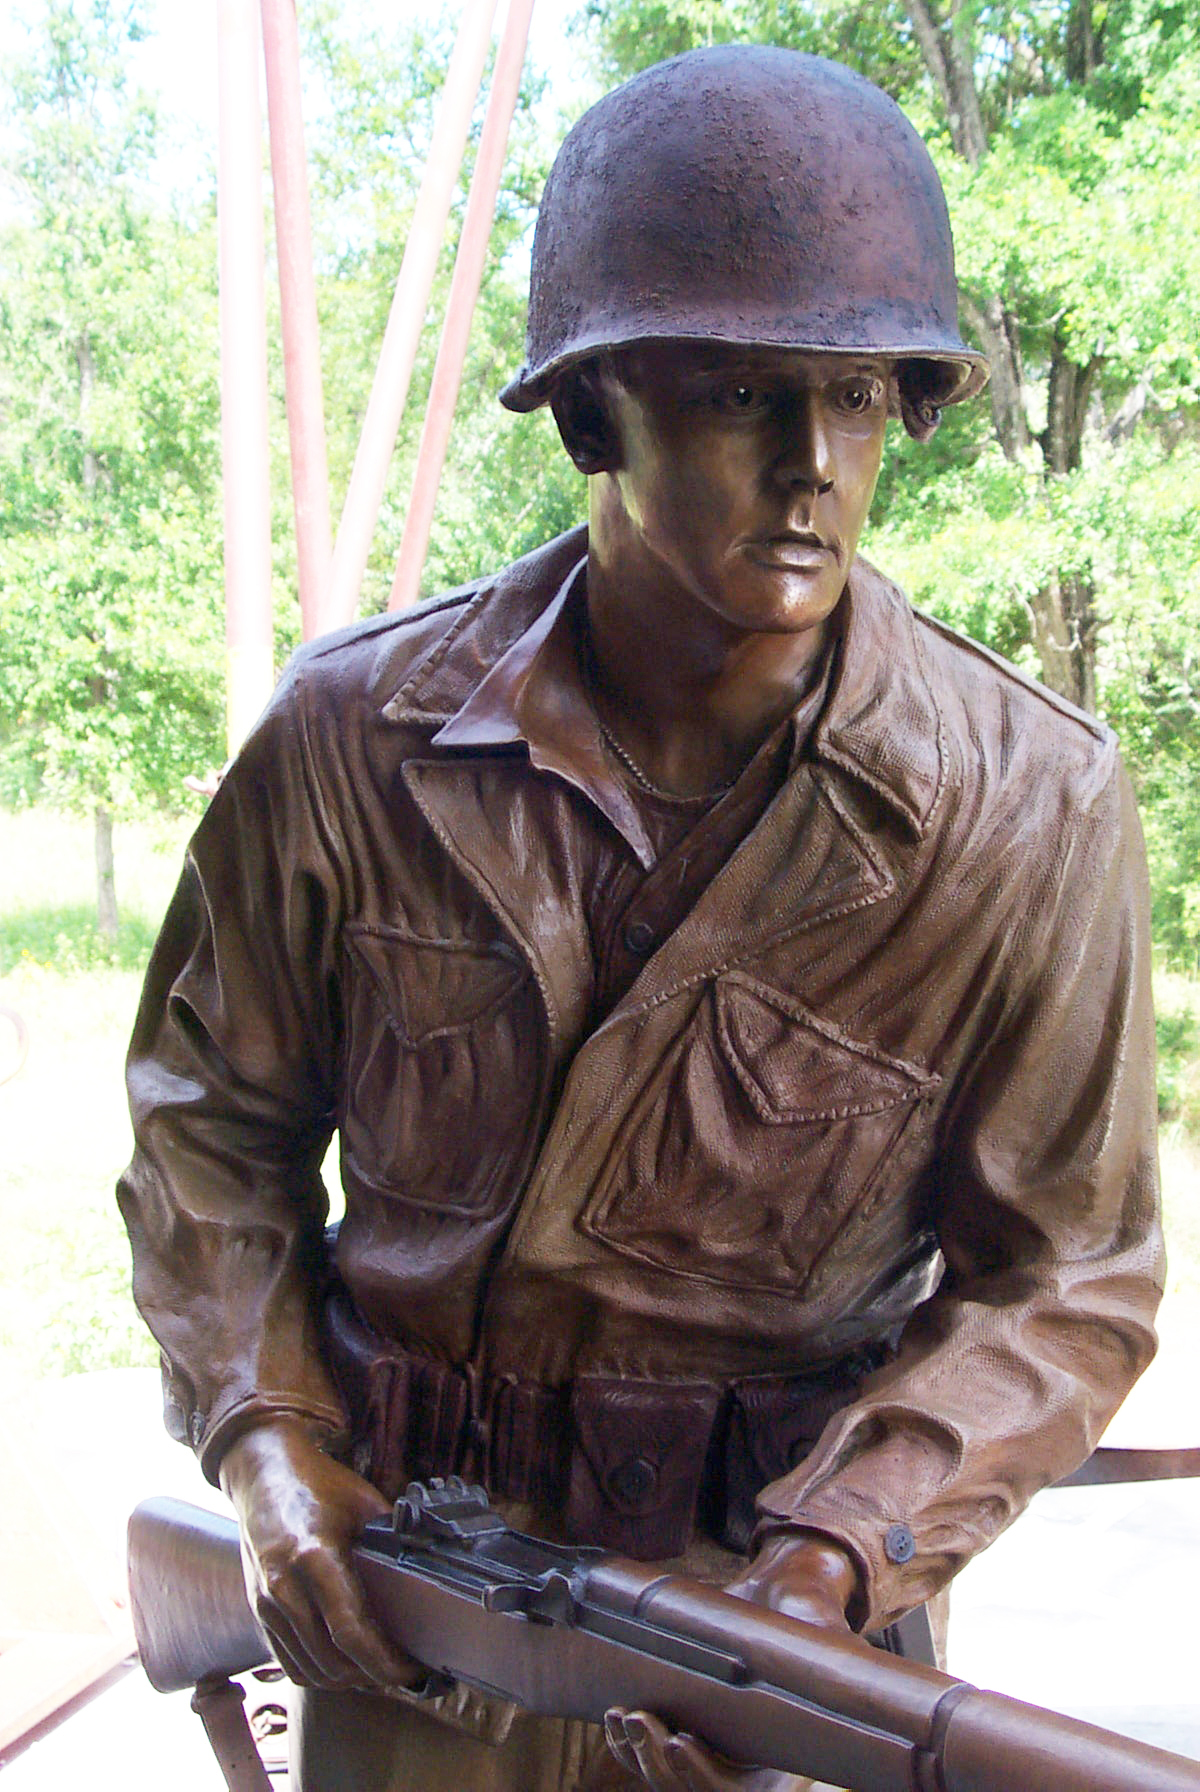 world-war-II-soldier-monument-john-maisano-4.jpg